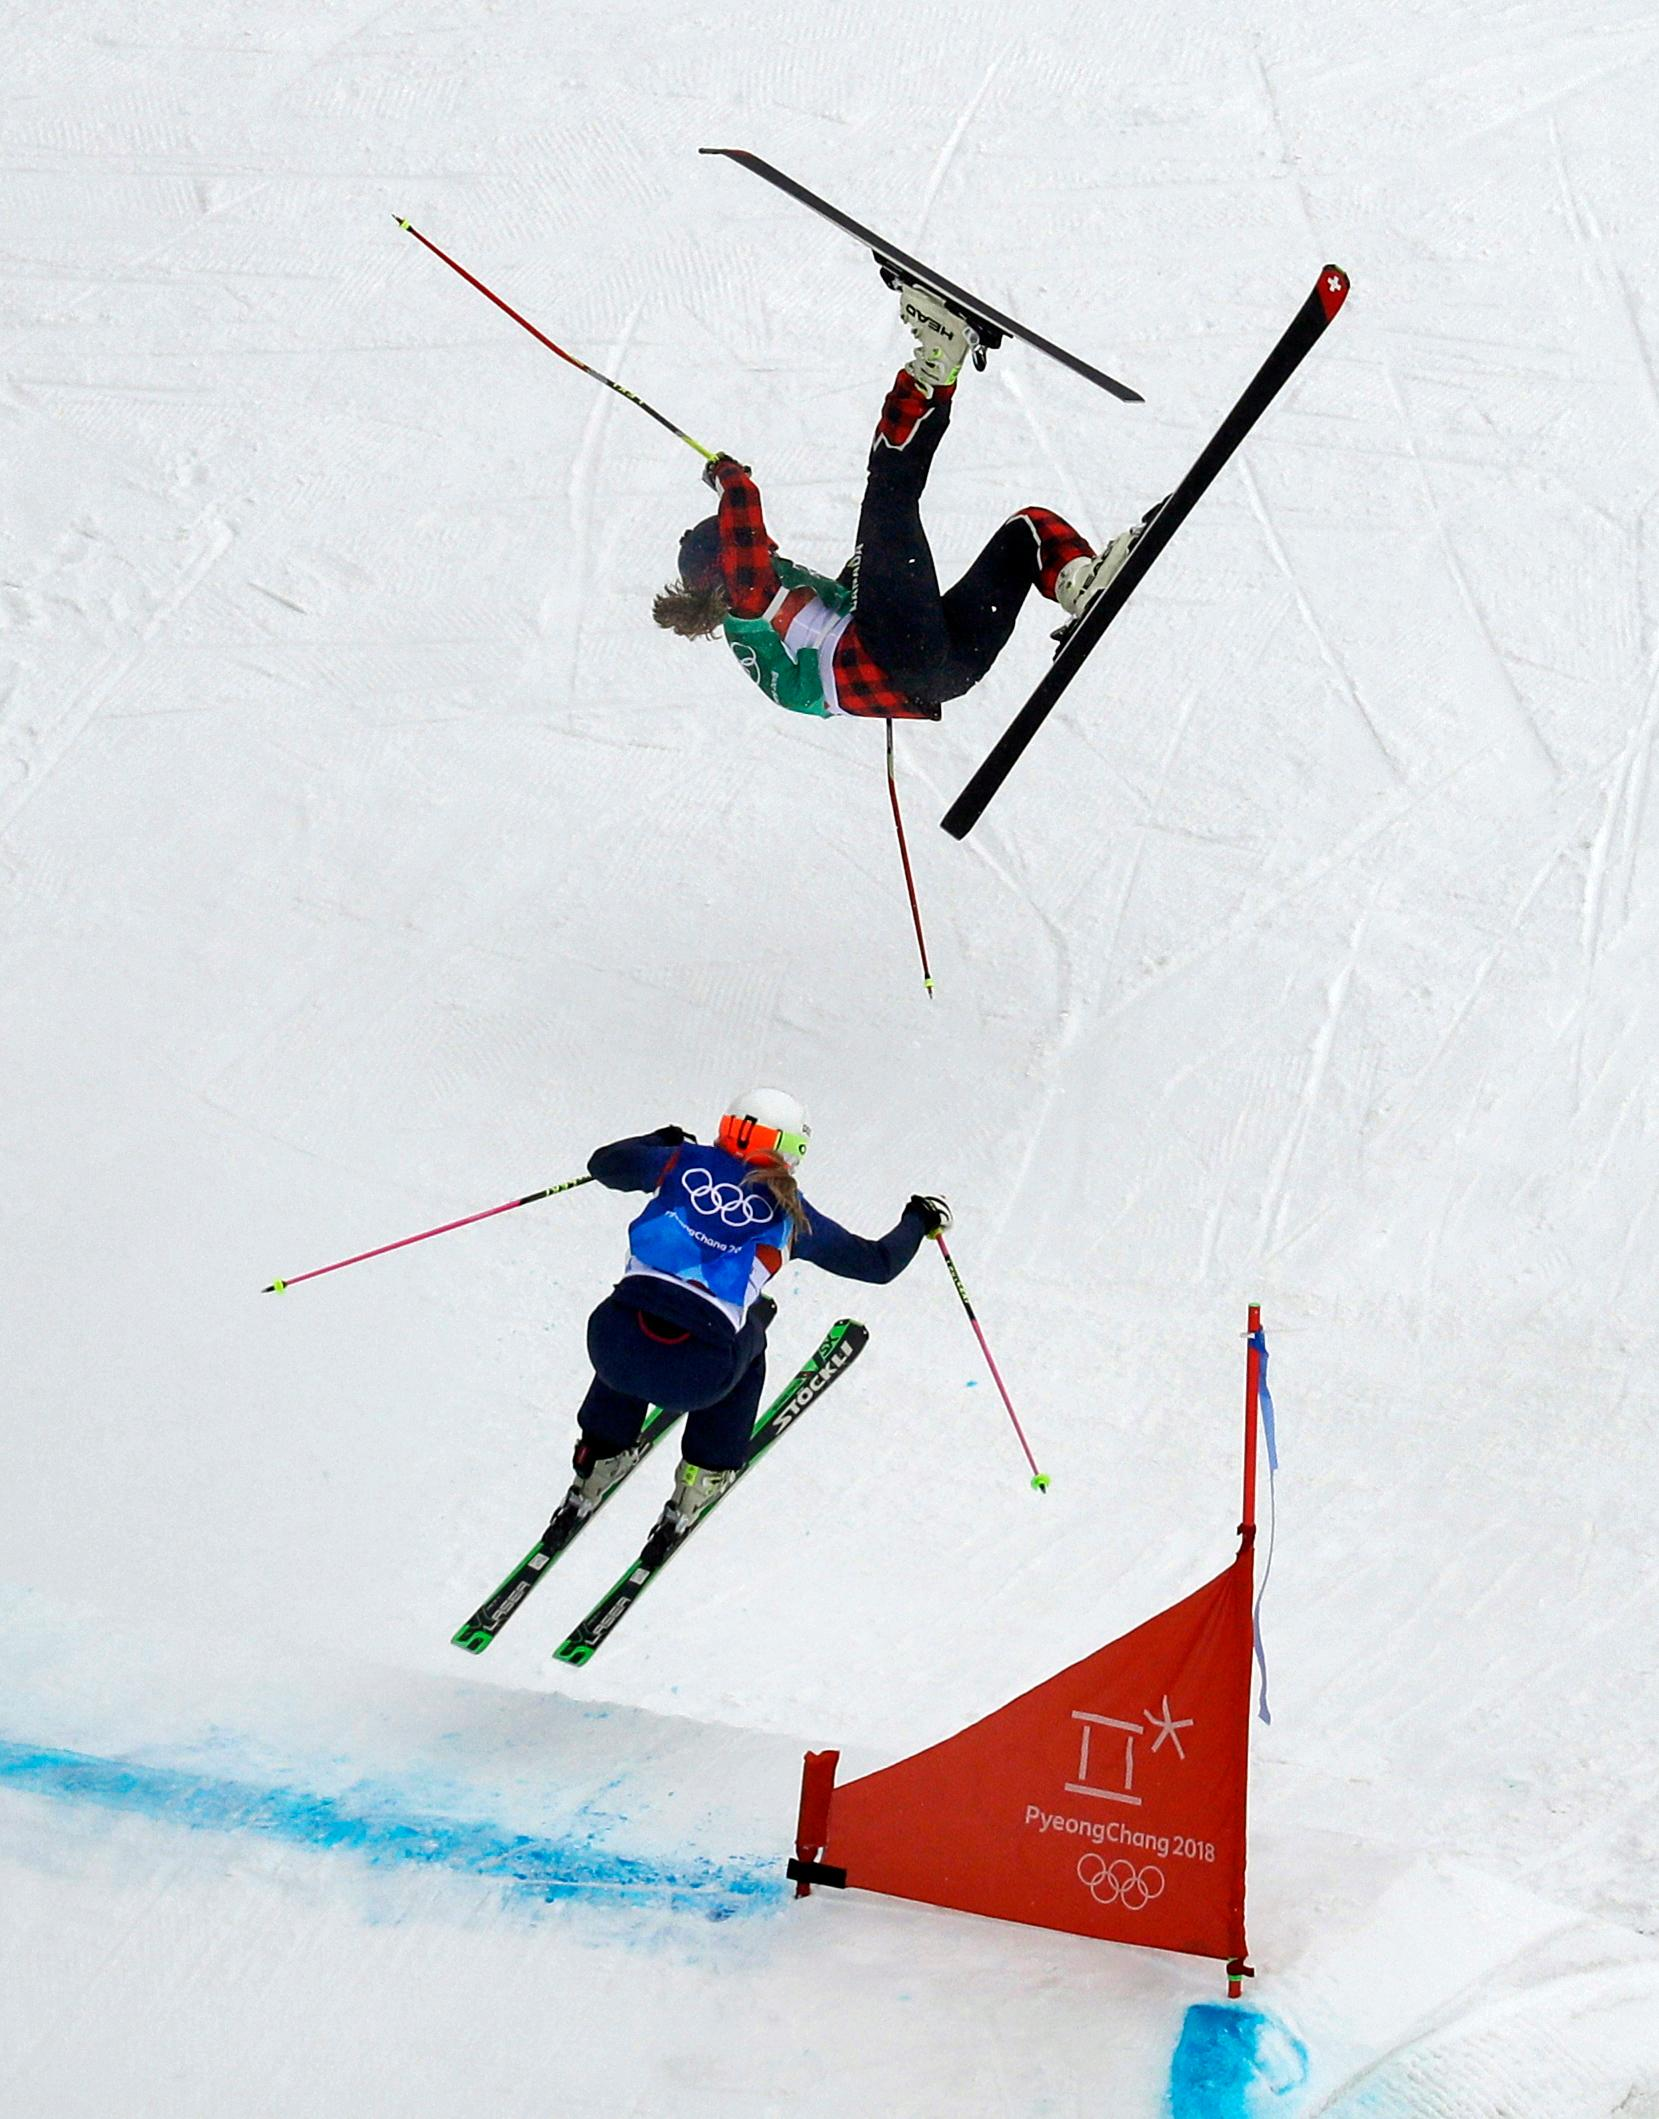 India Sherret, of Canada, crashes as Emily Sarsfield, of Britain, jumps during the women's ski cross elimination round at Phoenix Snow Park at the 2018 Winter Olympics in Pyeongchang, South Korea, Friday, Feb. 23, 2018. (AP Photo/Kin Cheung)